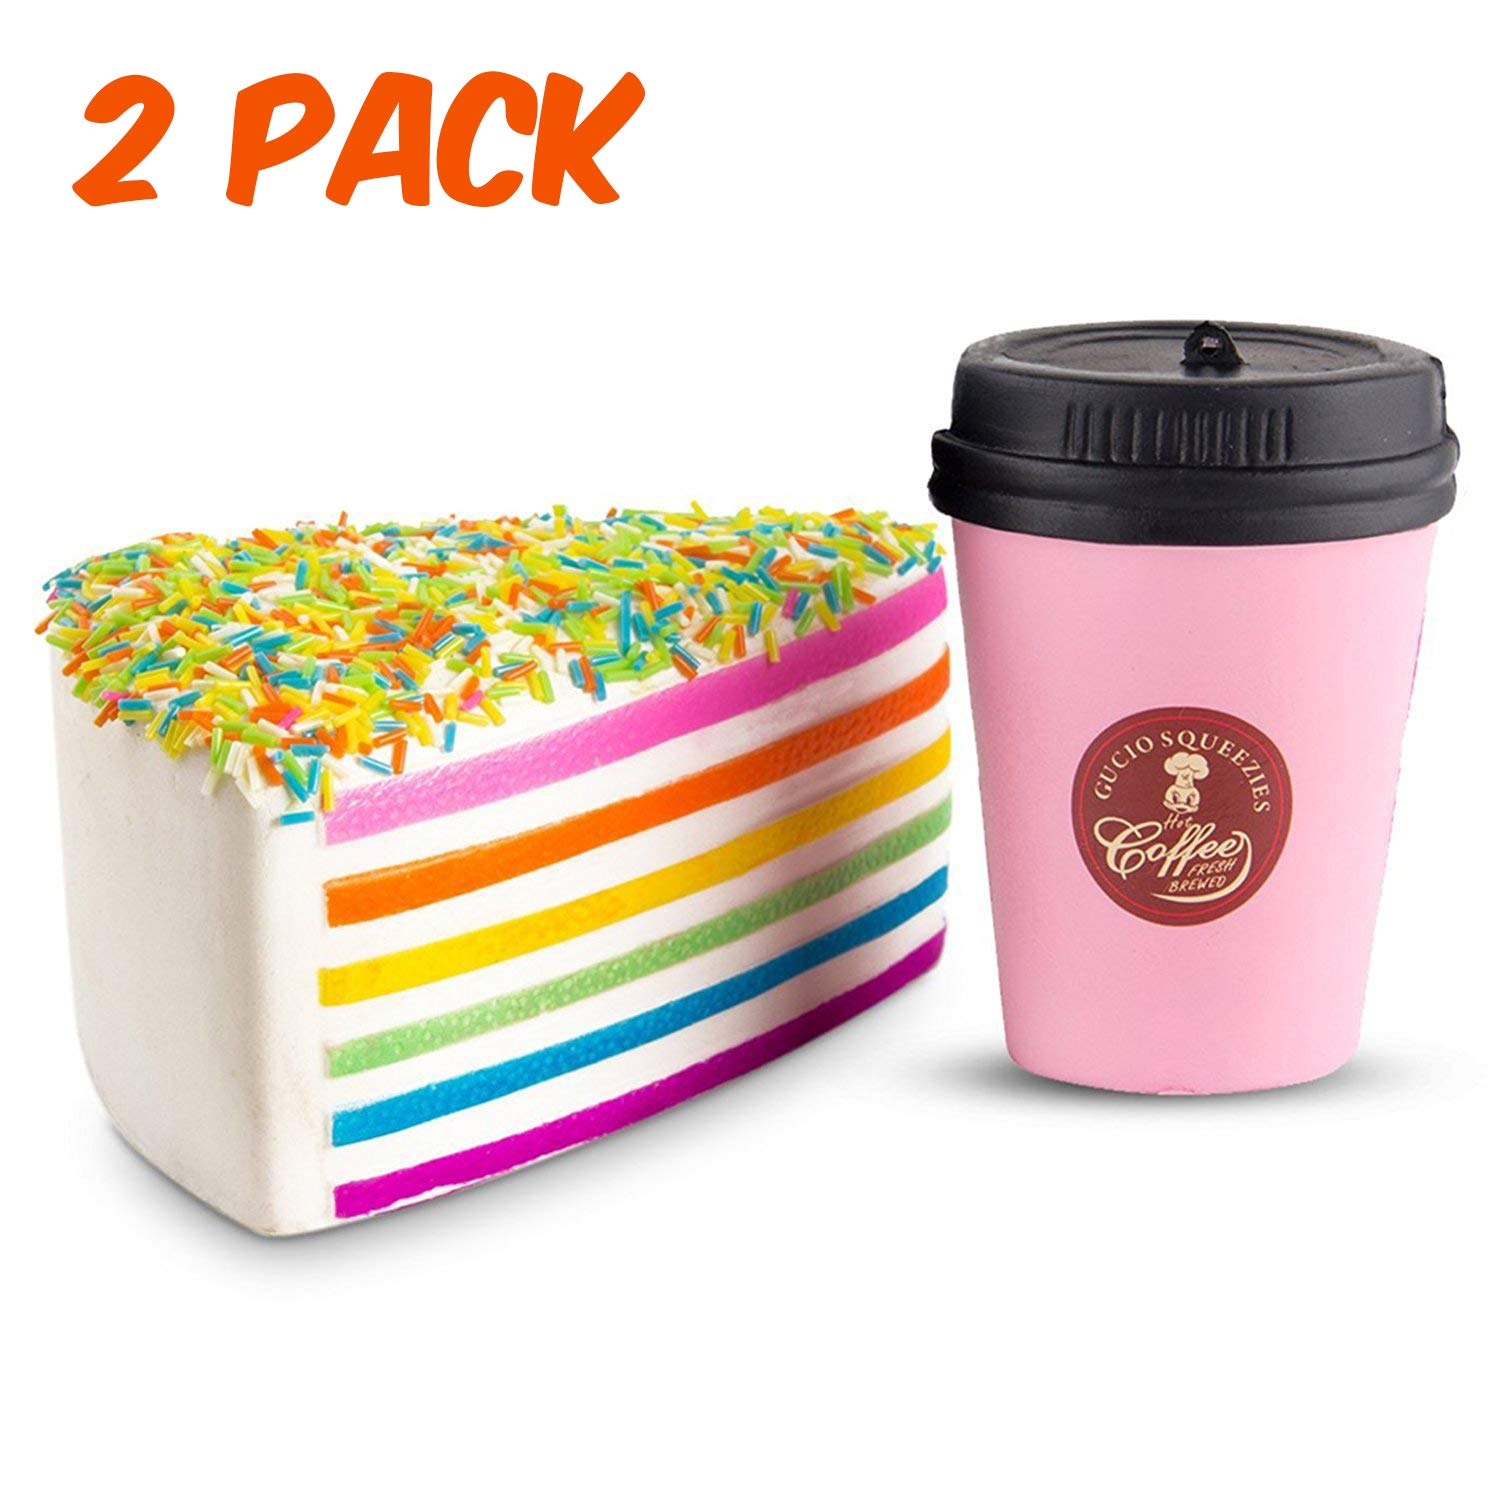 WATINC Jumbo 2pcs Squishies coffee cup&Rainbow cake Slow Rising Squishies Sweet Scented Kid Toy Hand ,Stress Relief Toy Lovely?Toy Large(cupπnk ice cream)